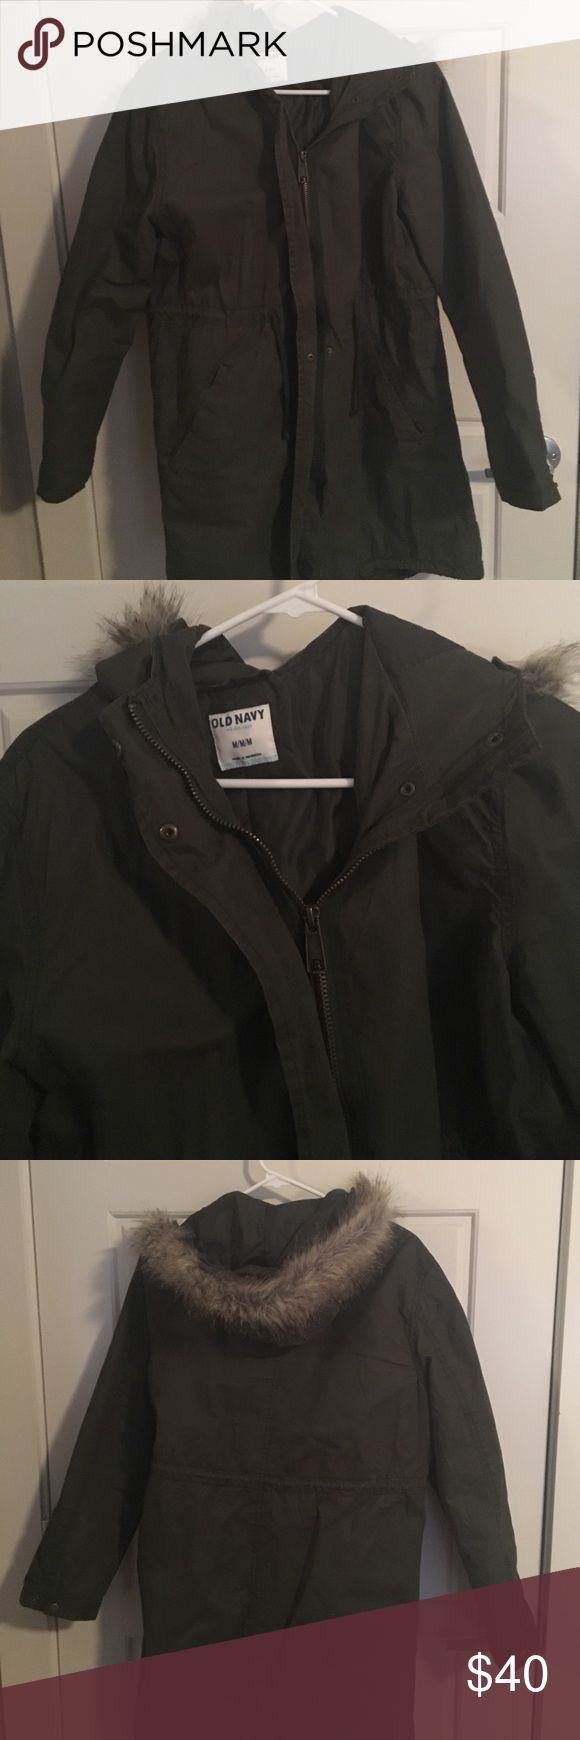 Awesome, warm winter coat in excellent condition Fun, cute coat. It is super warm. The color is an army green. I did not wear this more than a few times. Old Navy Jackets & Coats